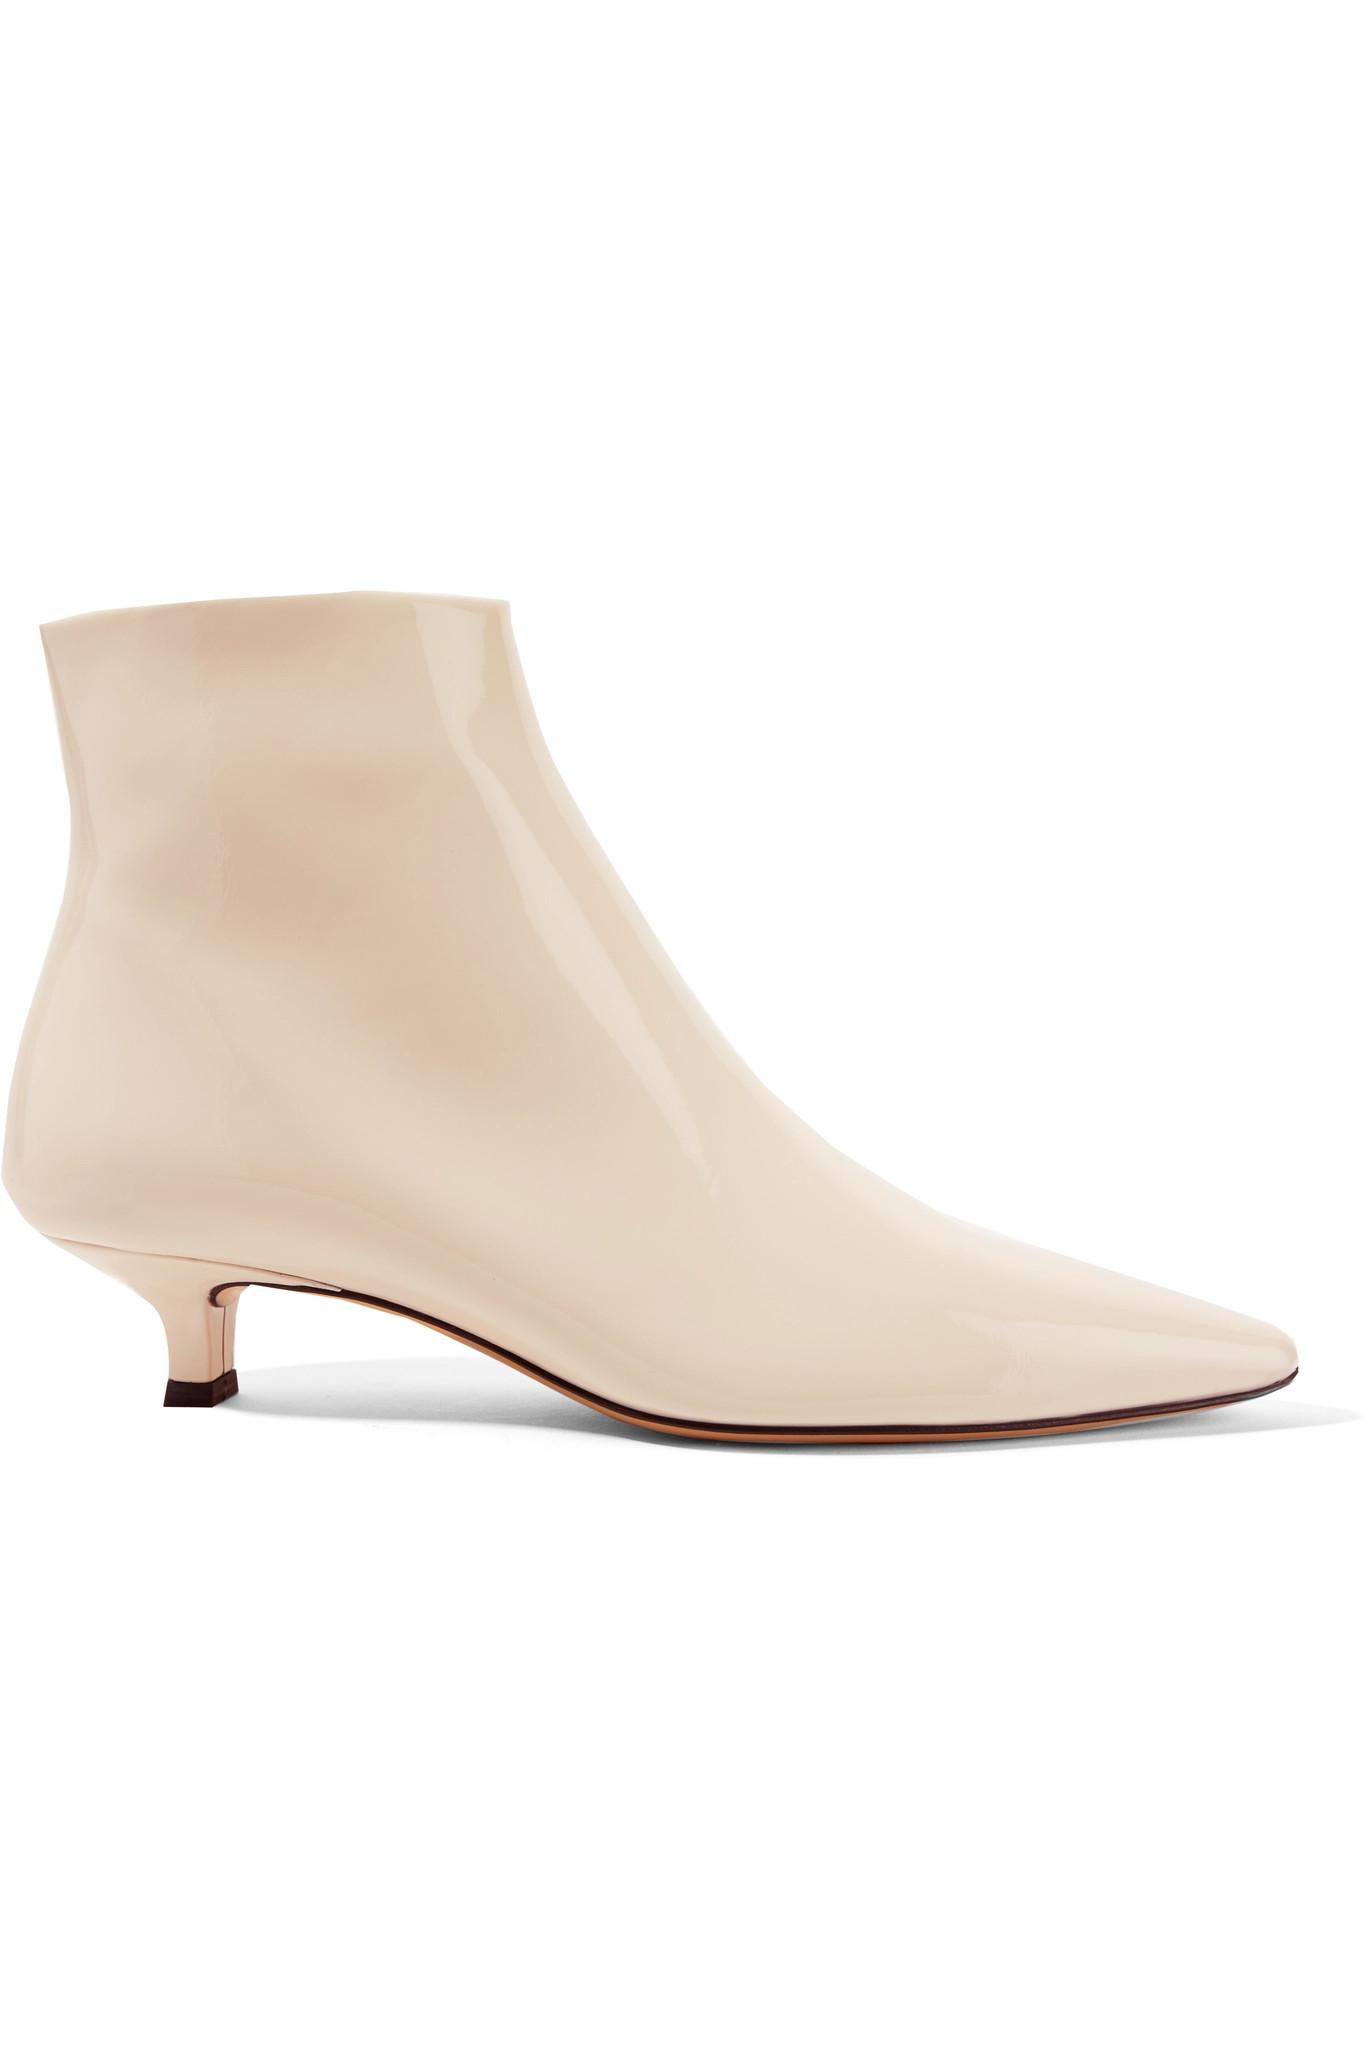 The Row. Women's White Coco Patent-leather Ankle Boots